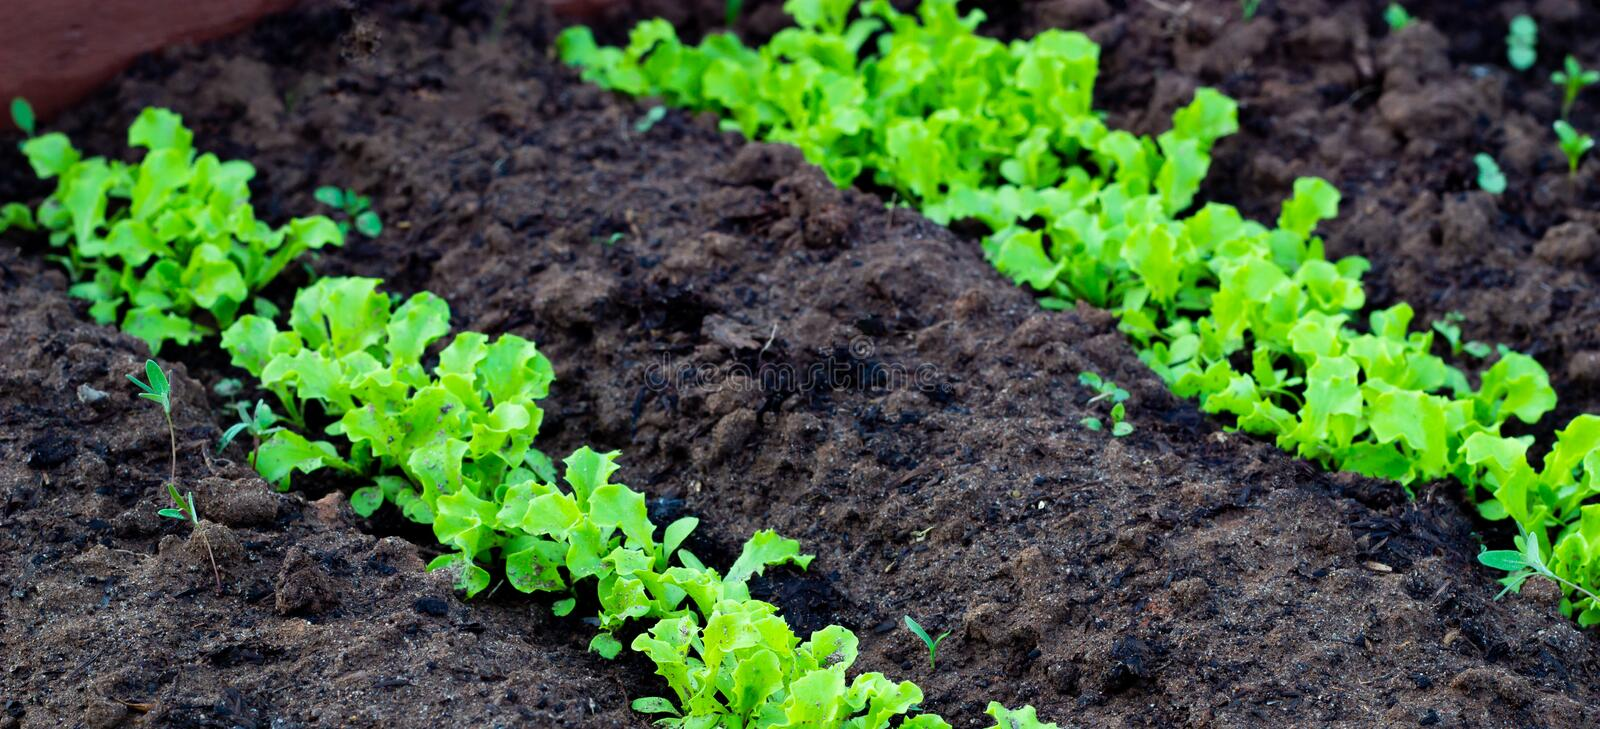 Fresh leaves of green lettuce salad growing in soil in garden. Growing organic vegetables stock photo